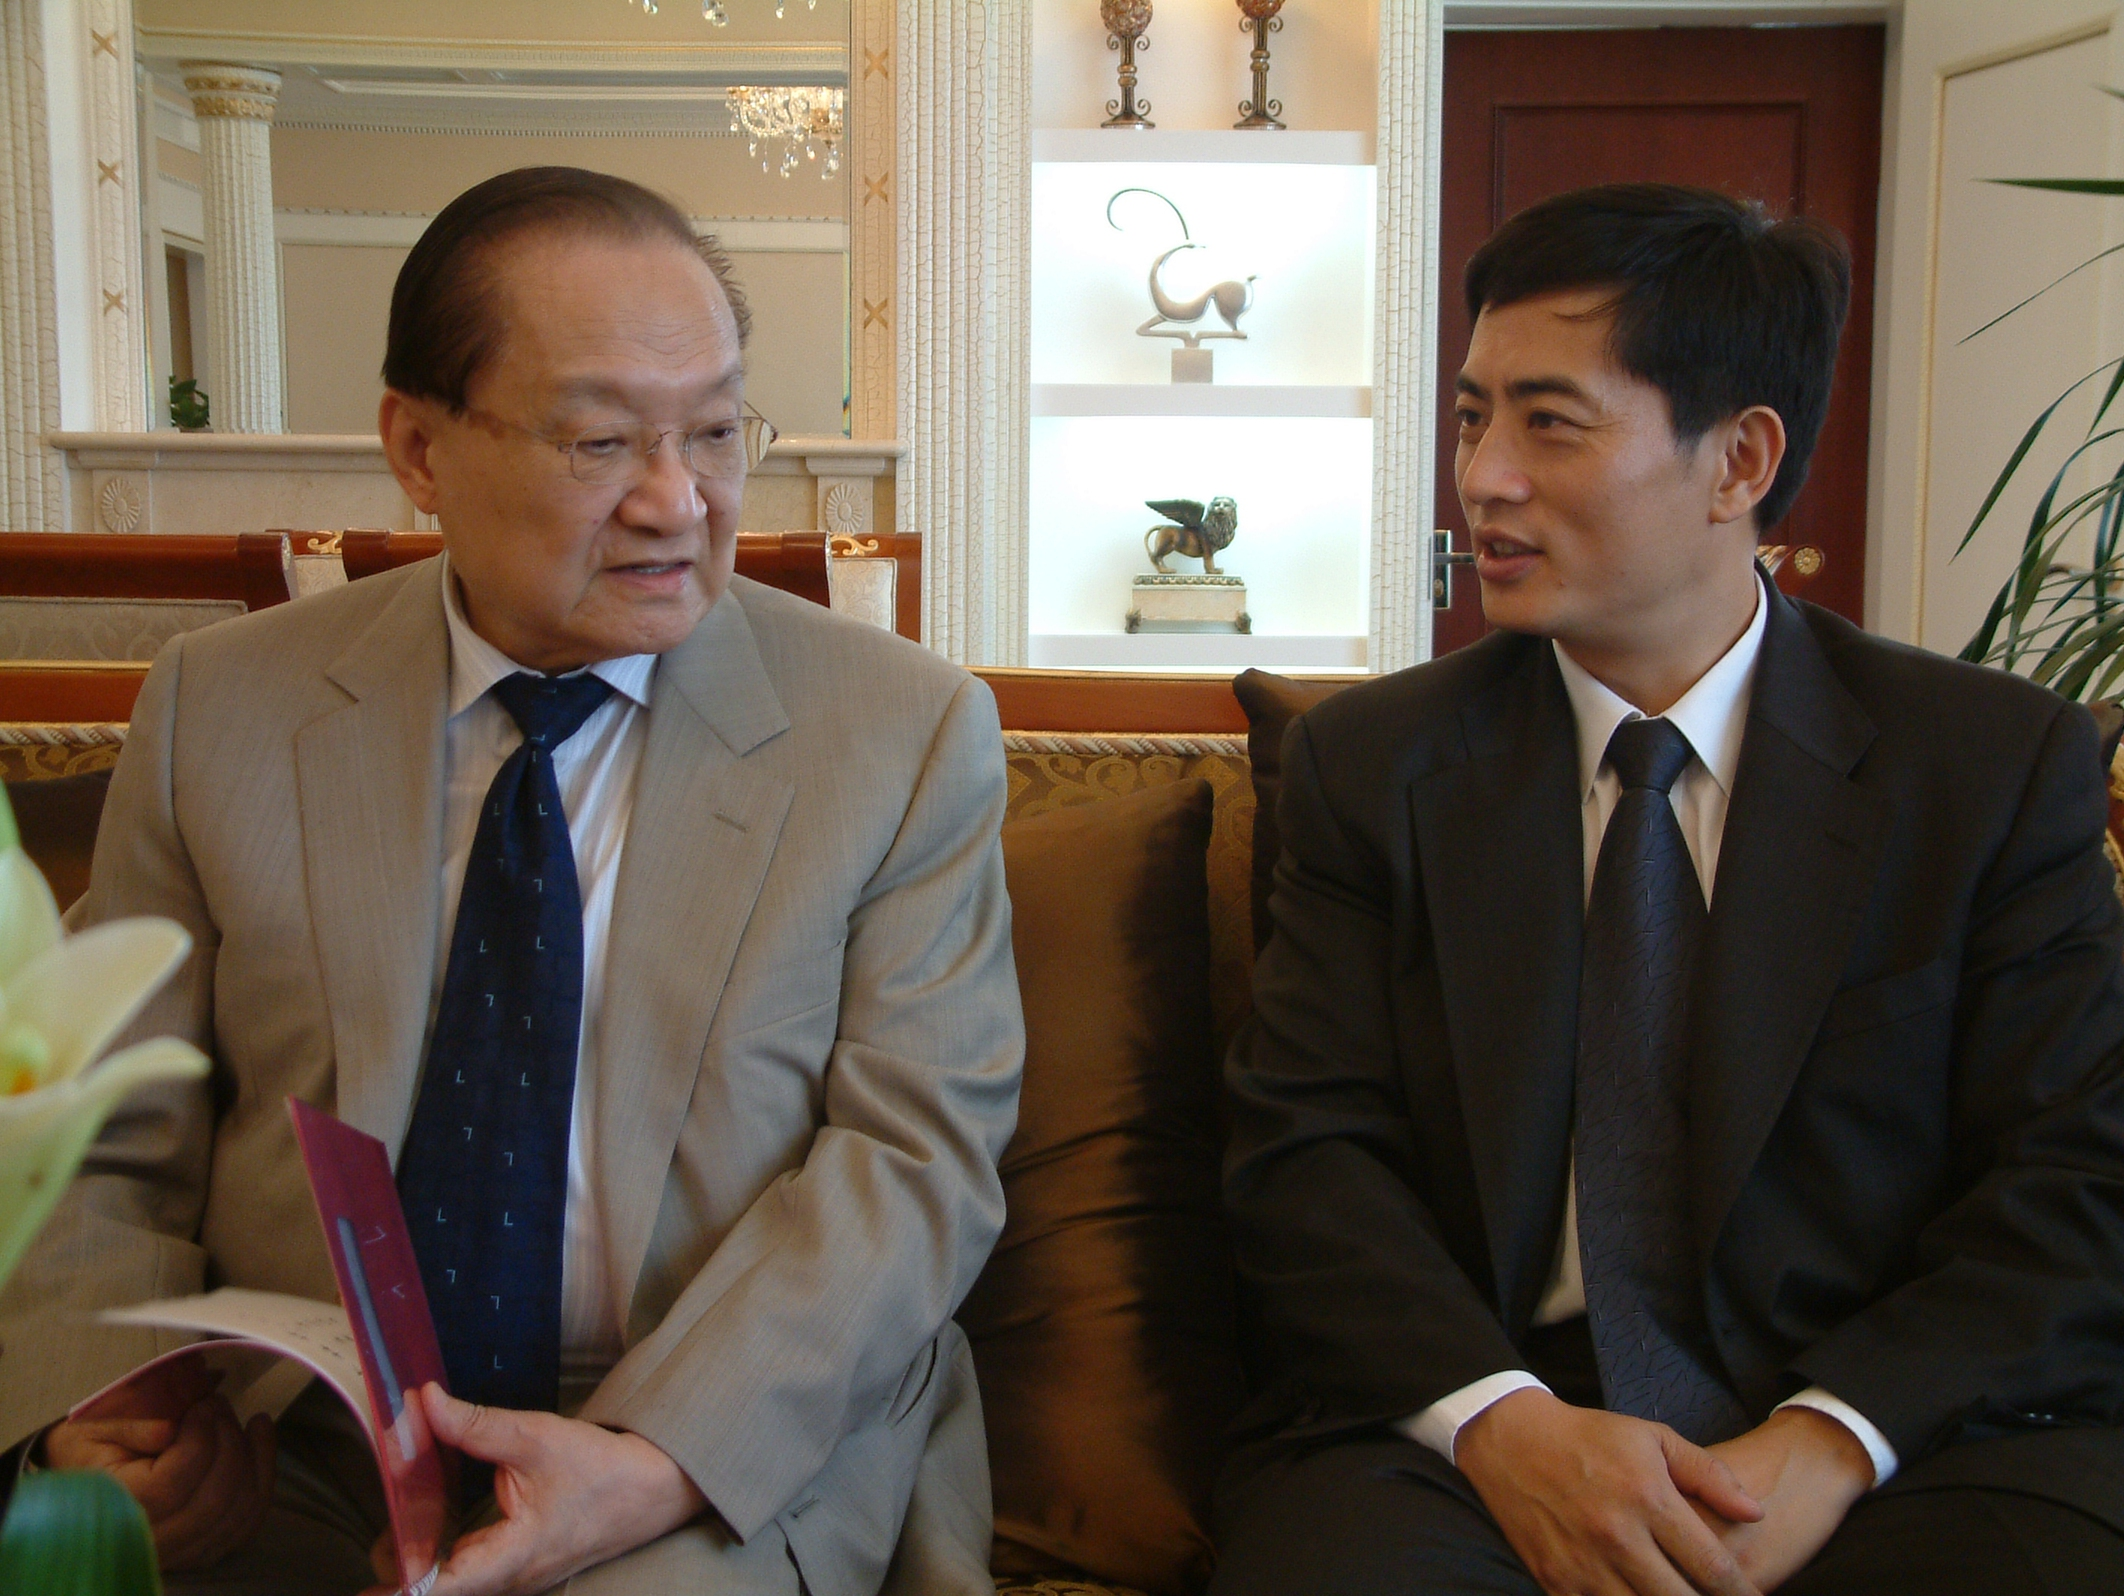 President Bin Chen and Yong Jin discuss poetry